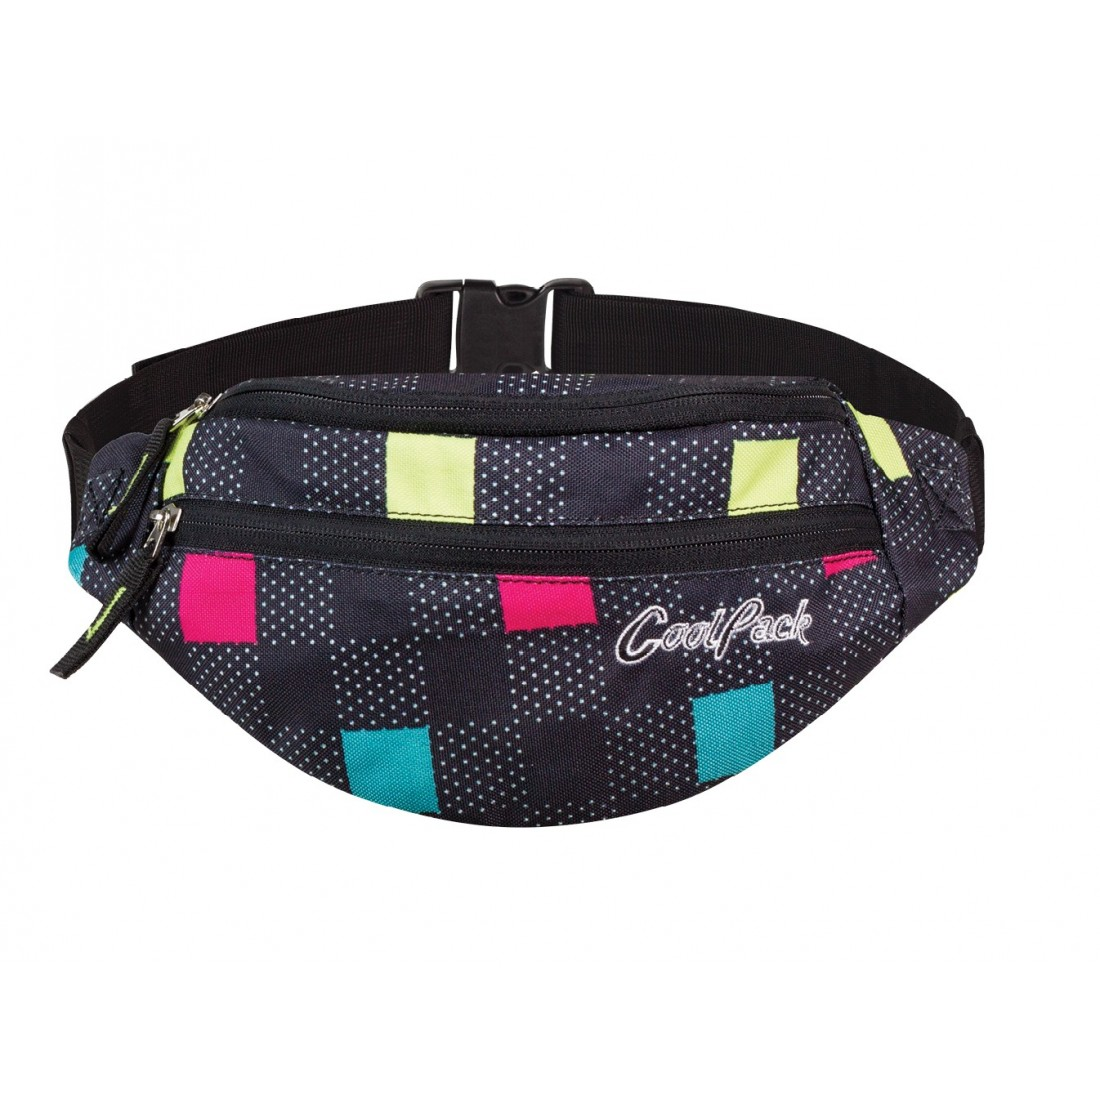 SASZETKA / NERKA / TORBA NA PAS COOLPACK POLAR COLOUR TILES 475